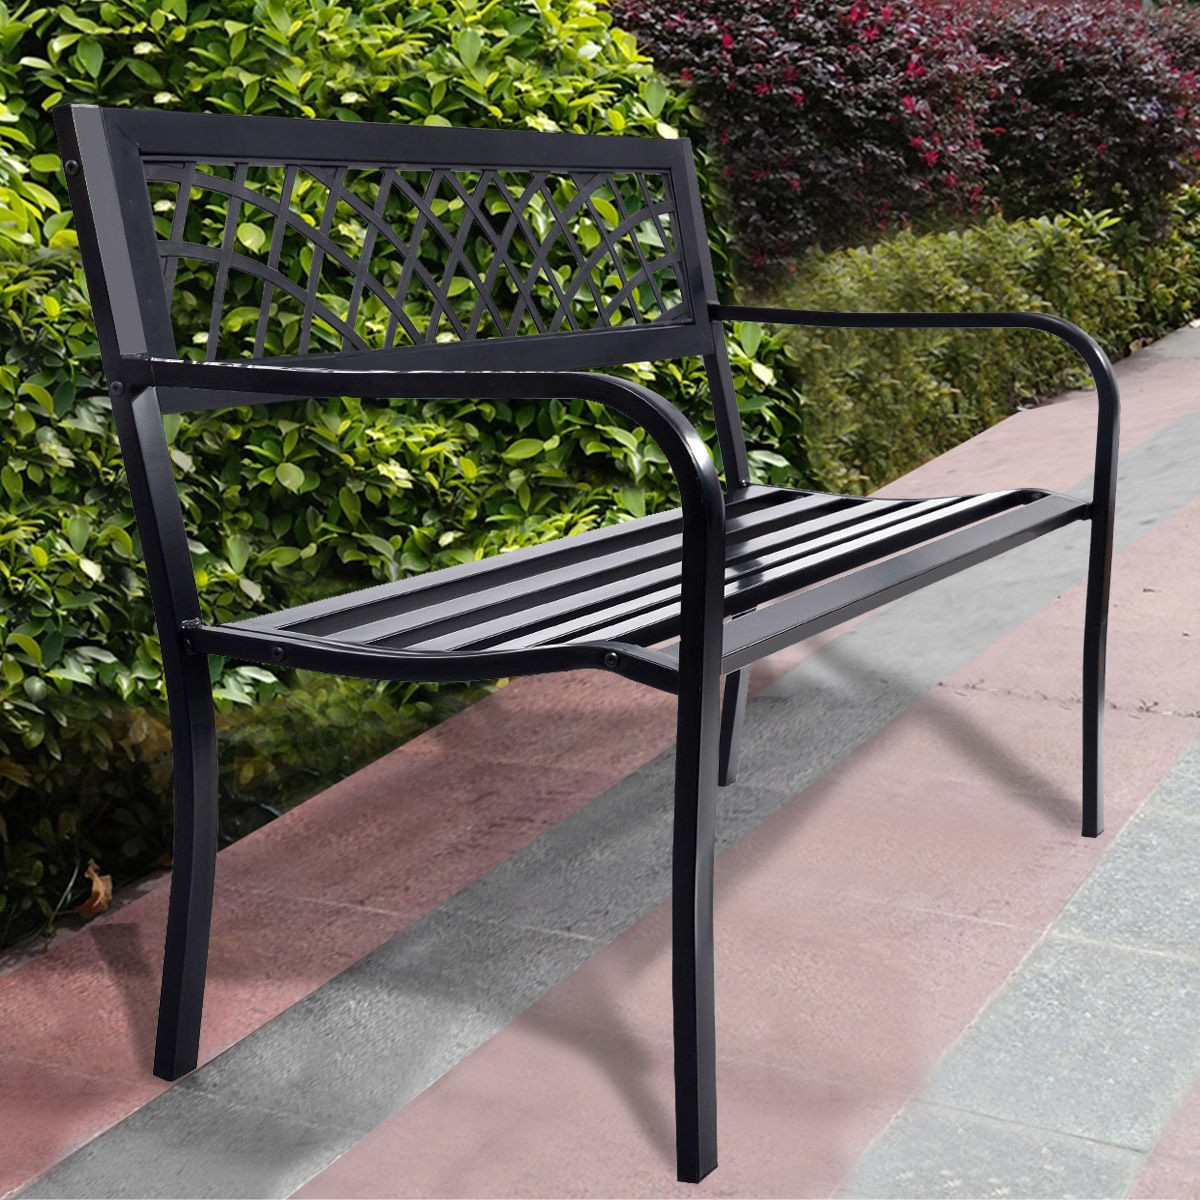 Details about Backrest Outdoor Park Bench Steel Frame Sturdy Durable Home  Garden Patio Chair